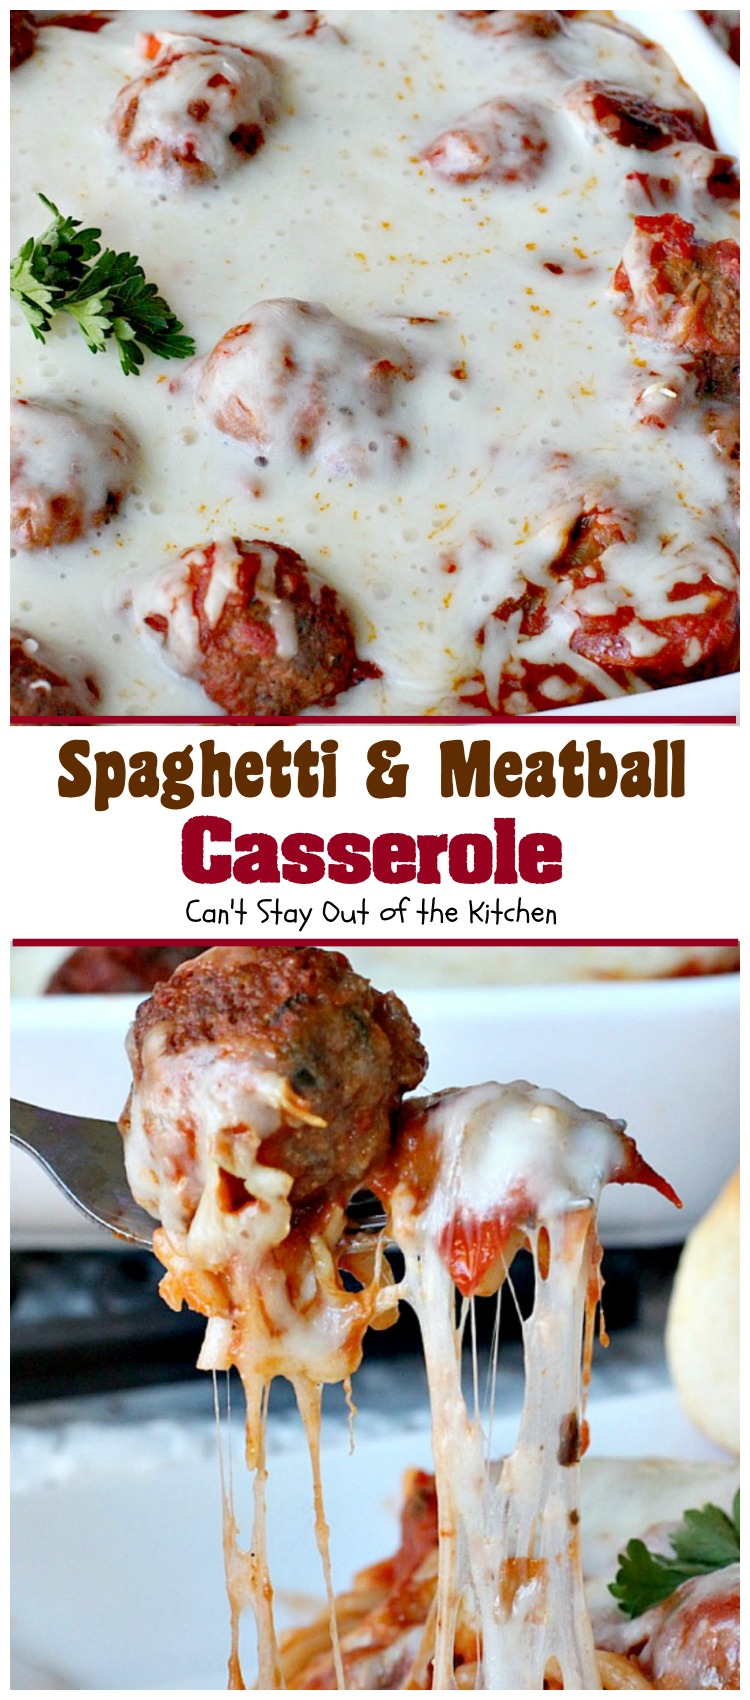 Spaghetti and Meatball Casserole | Can't Stay Out of the Kitchen